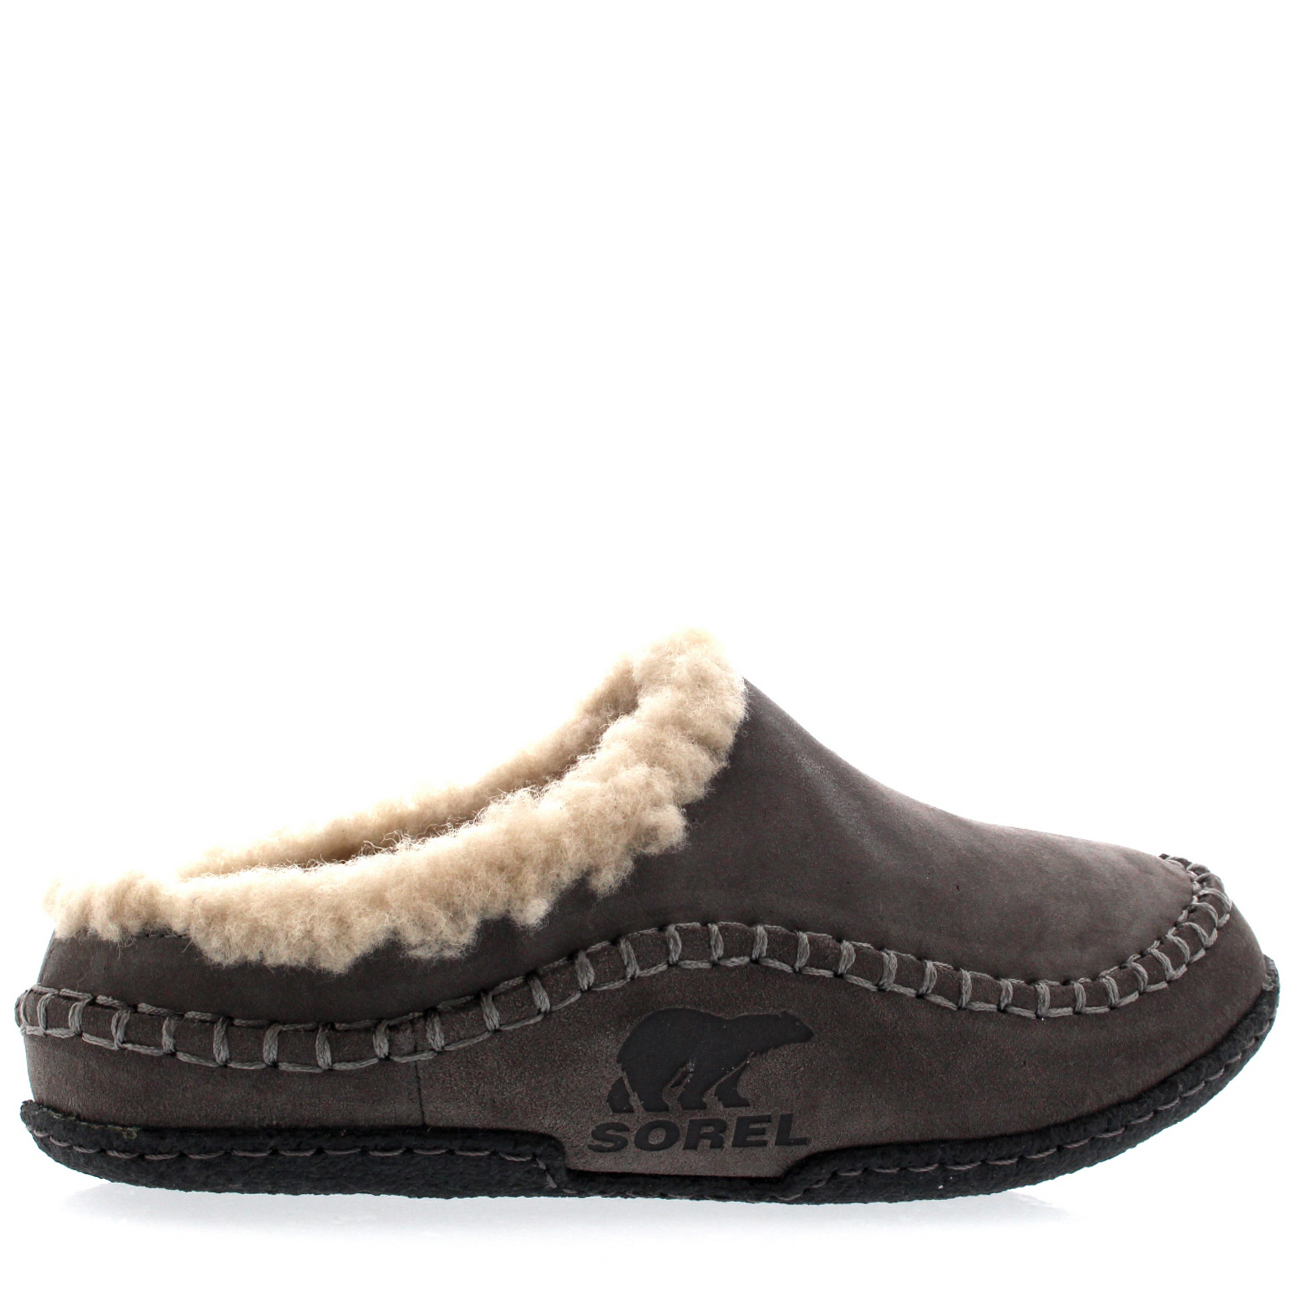 low cost recognized brands good service Details about Mens Sorel Falcon Ridge Casual Fur Suede Winter Shoes House  Slippers All Sizes